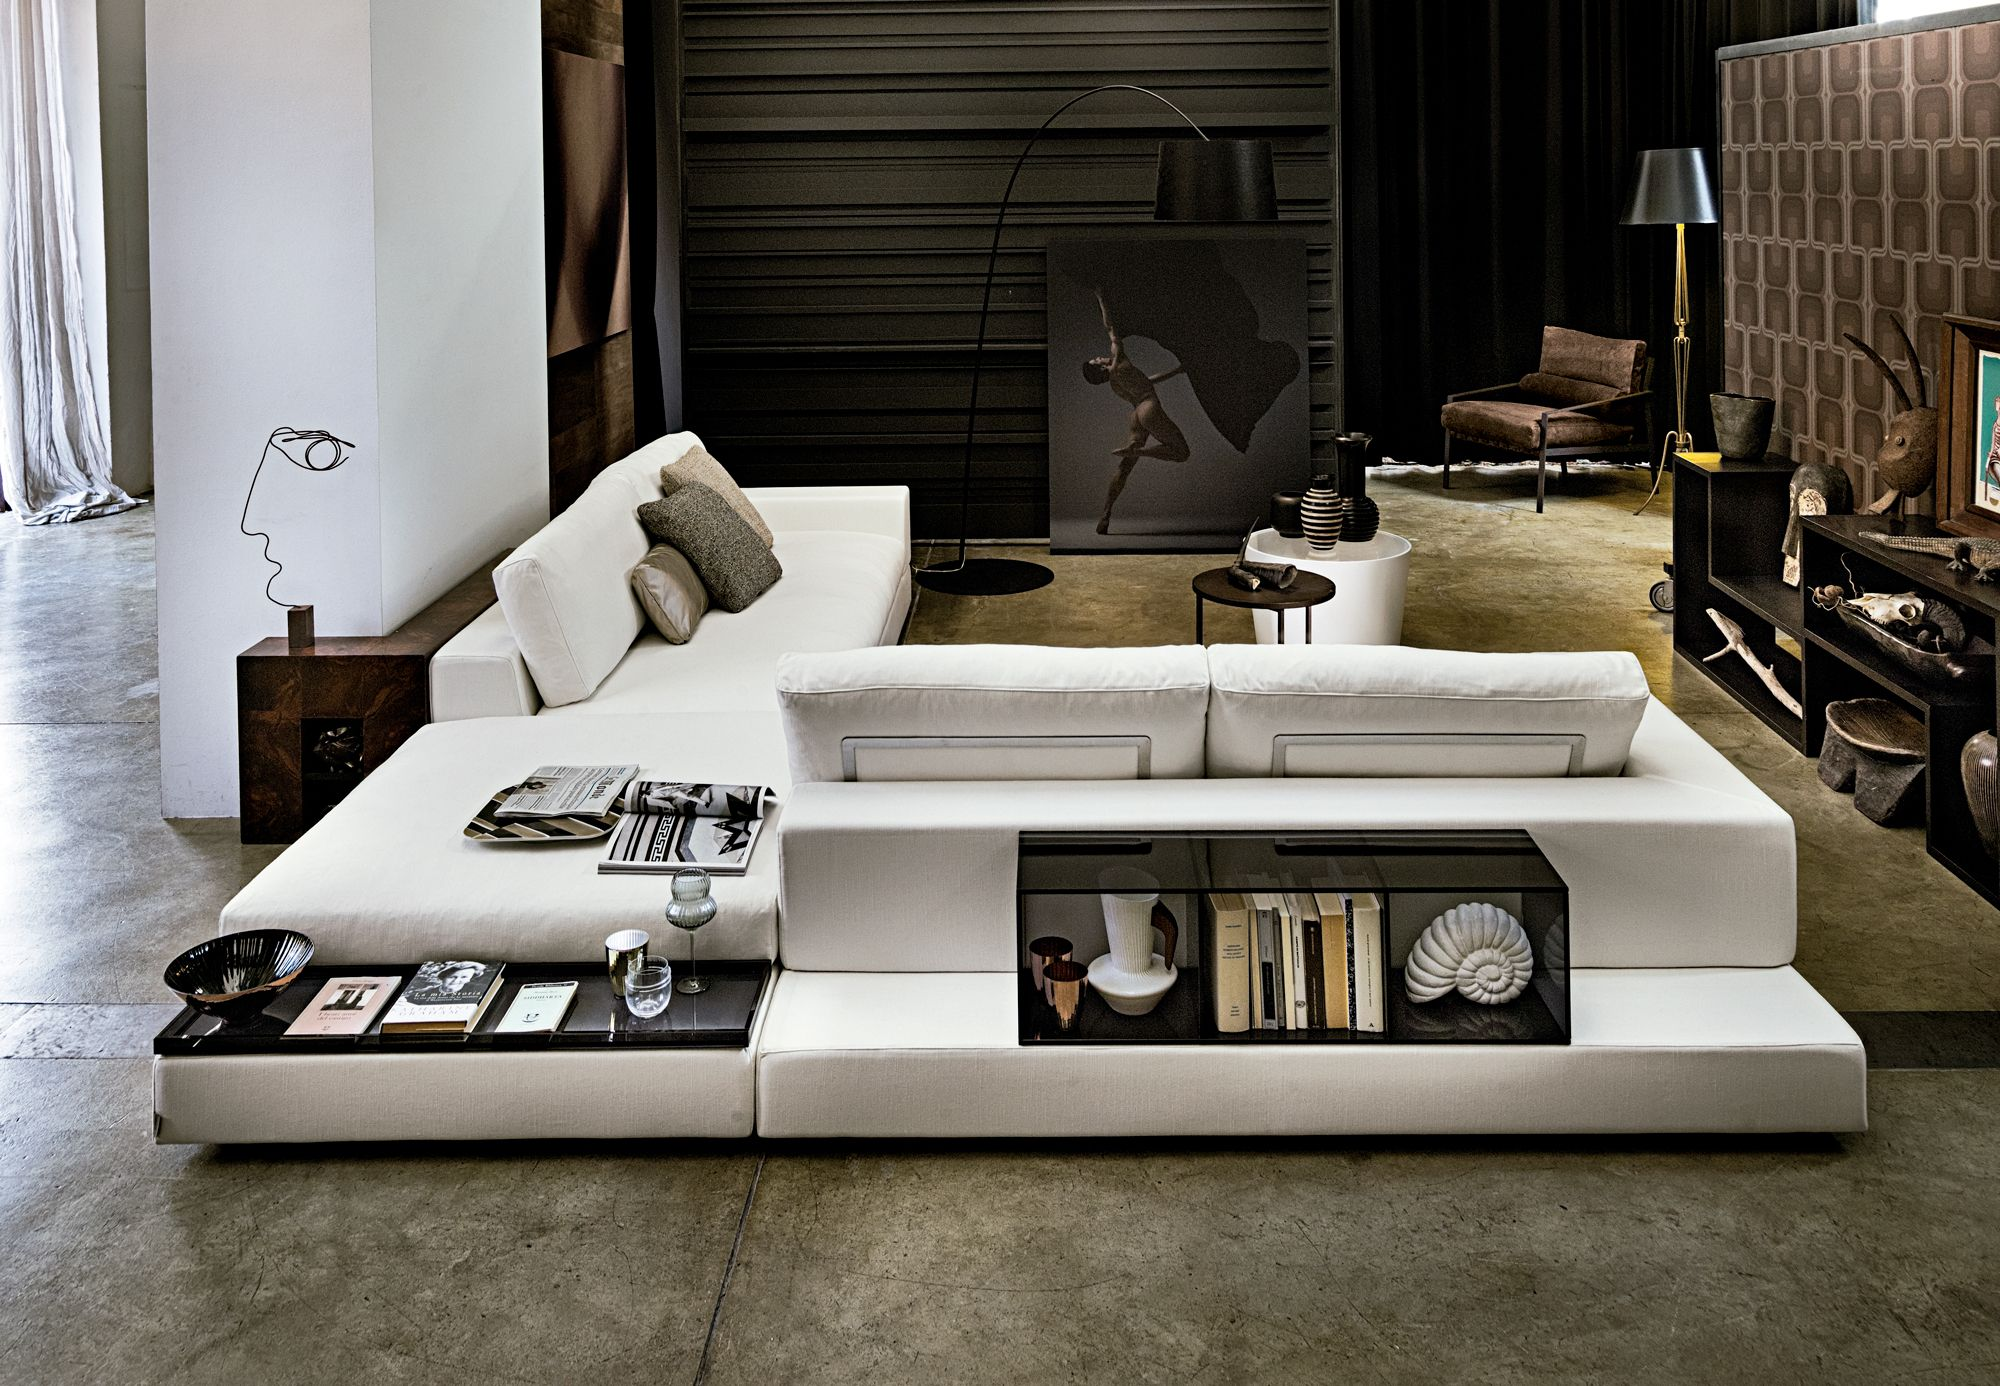 Contemporary High End Plat Sectional Italian Designer Luxury Furniture By Cassoni In 2020 Sofa Design Italian Sofa Designs Modern Tv Room